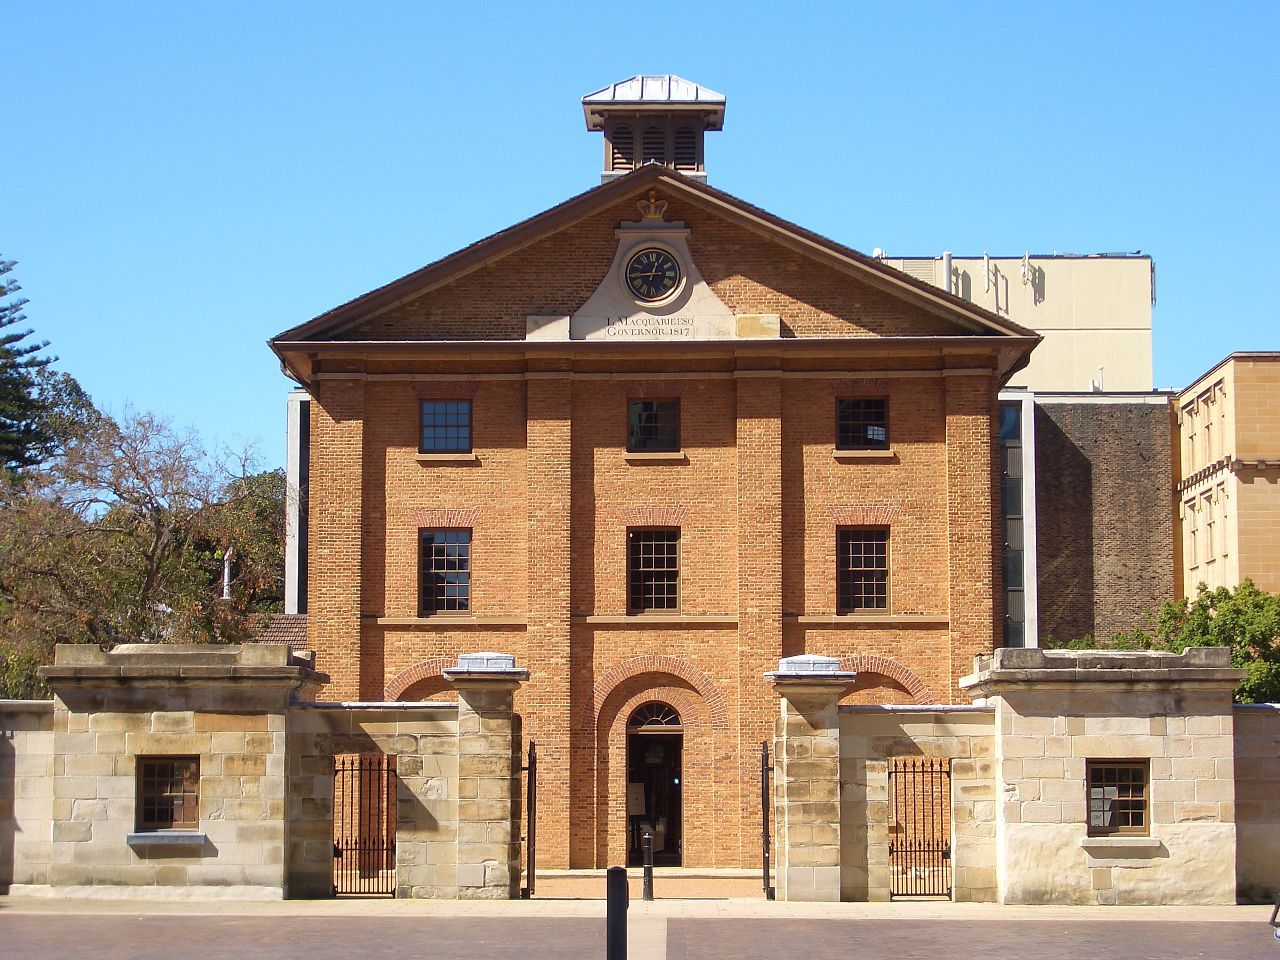 HydePark Barracks Historical sites in Sydney